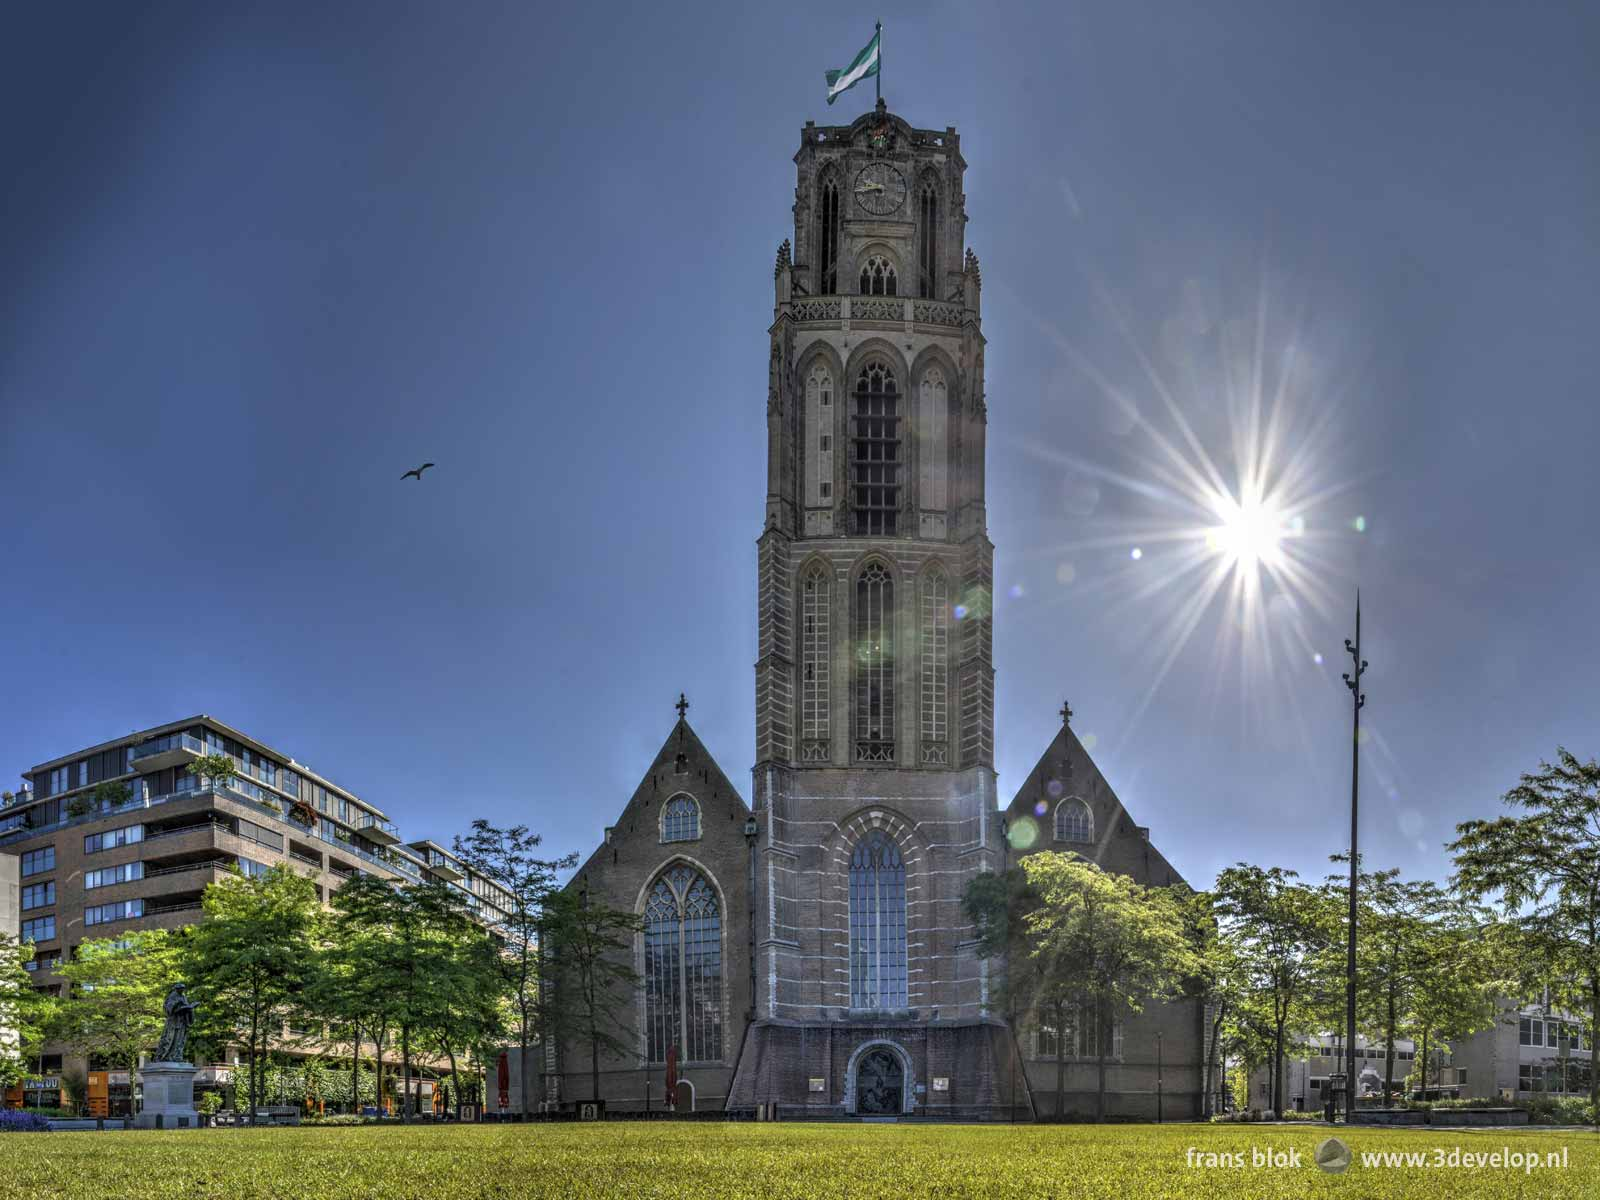 Photo of the redecorated square in front of Saint Lawrence's church in Rotterdam on a sunny morning in June